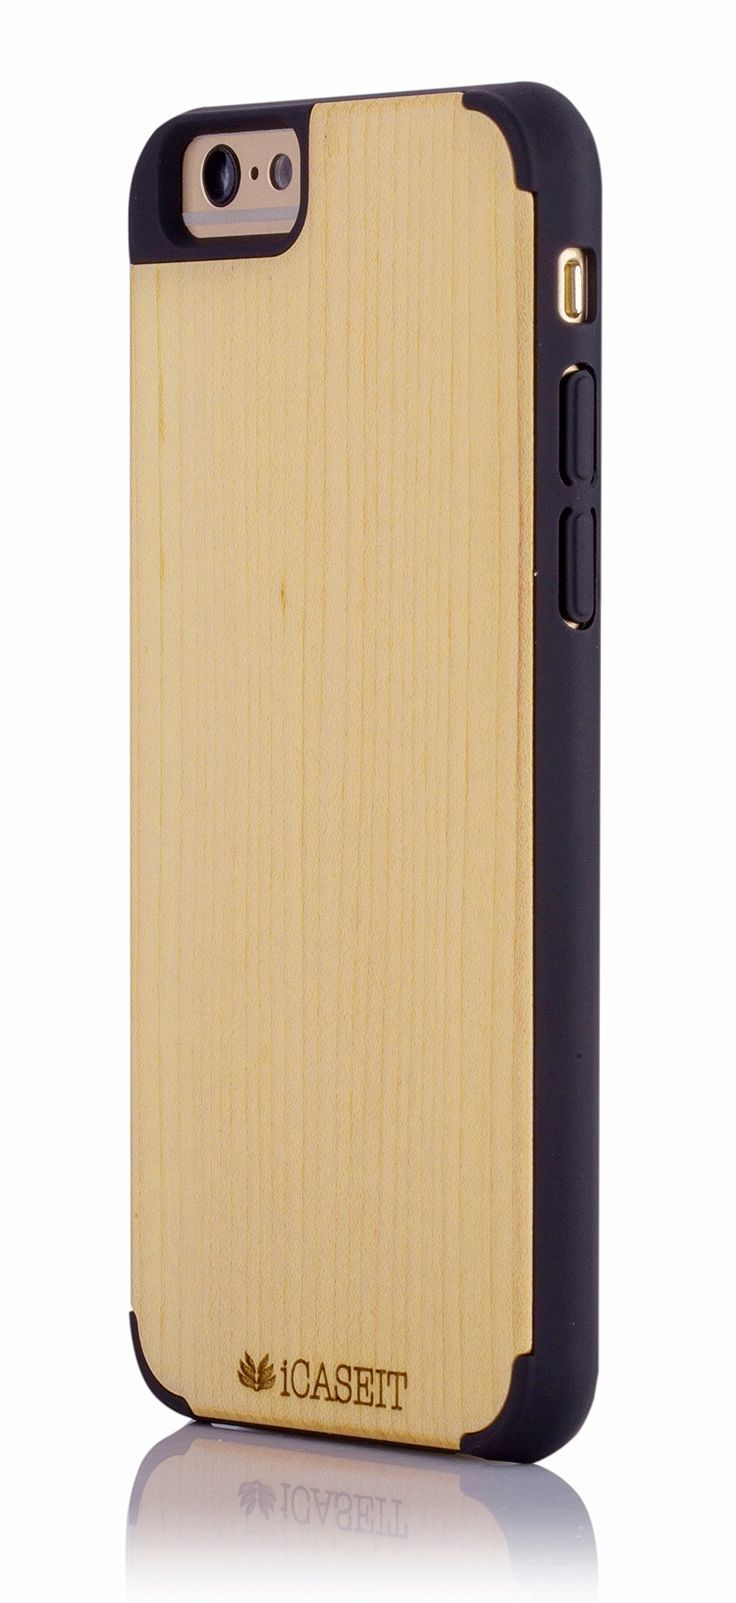 "Amazon.com: iCASEIT Wood iPhone Case - Genuinely Natural, Unique & Premium quality for iPhone 6 (4.7"" Display) - Maple / Black: Cell Phones & Accessories"